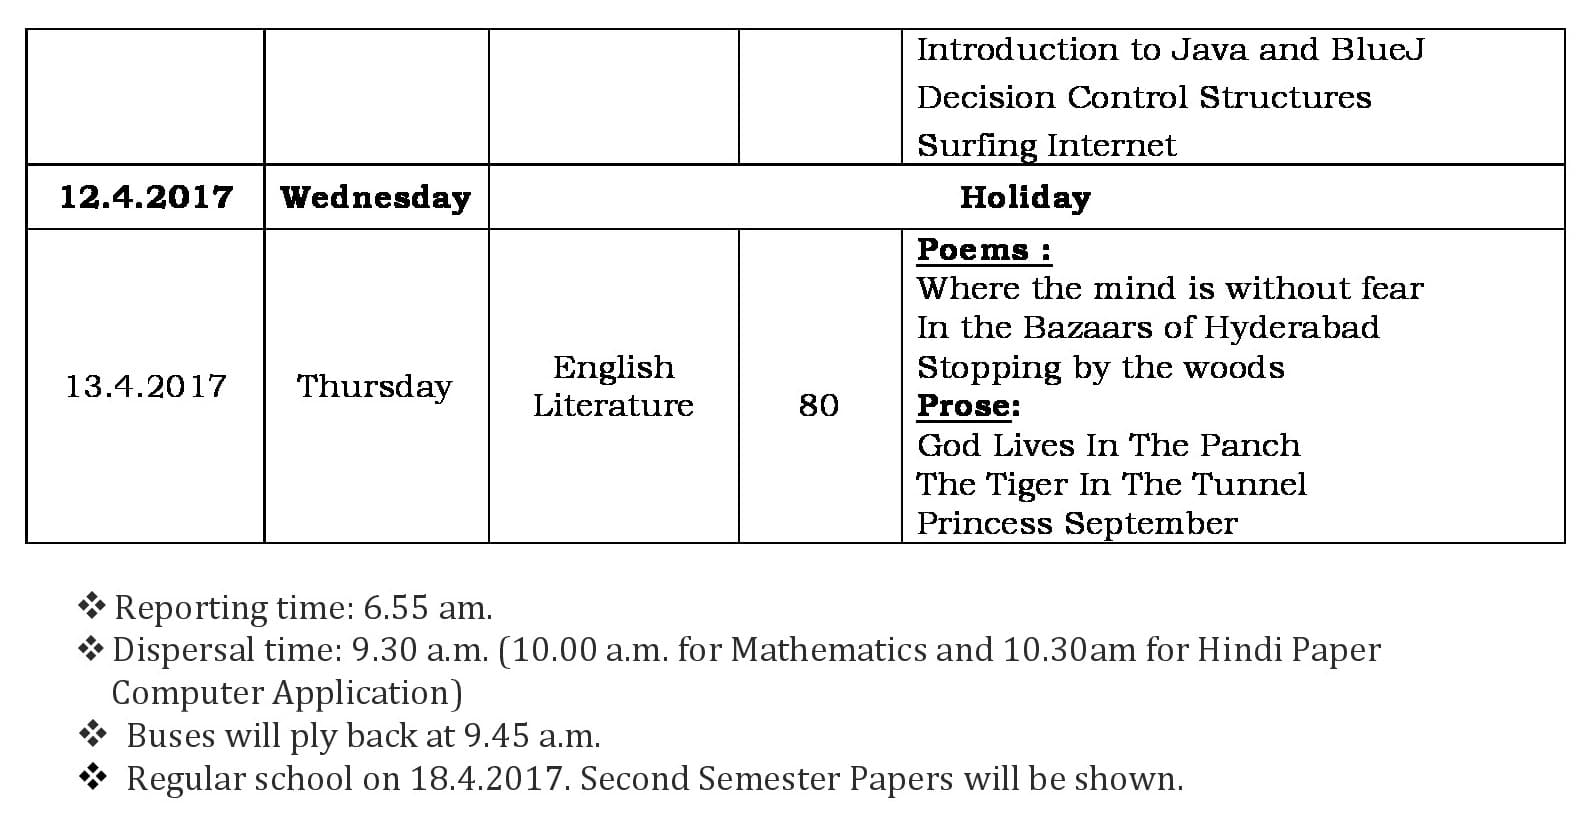 Second Semester Examination Schedule